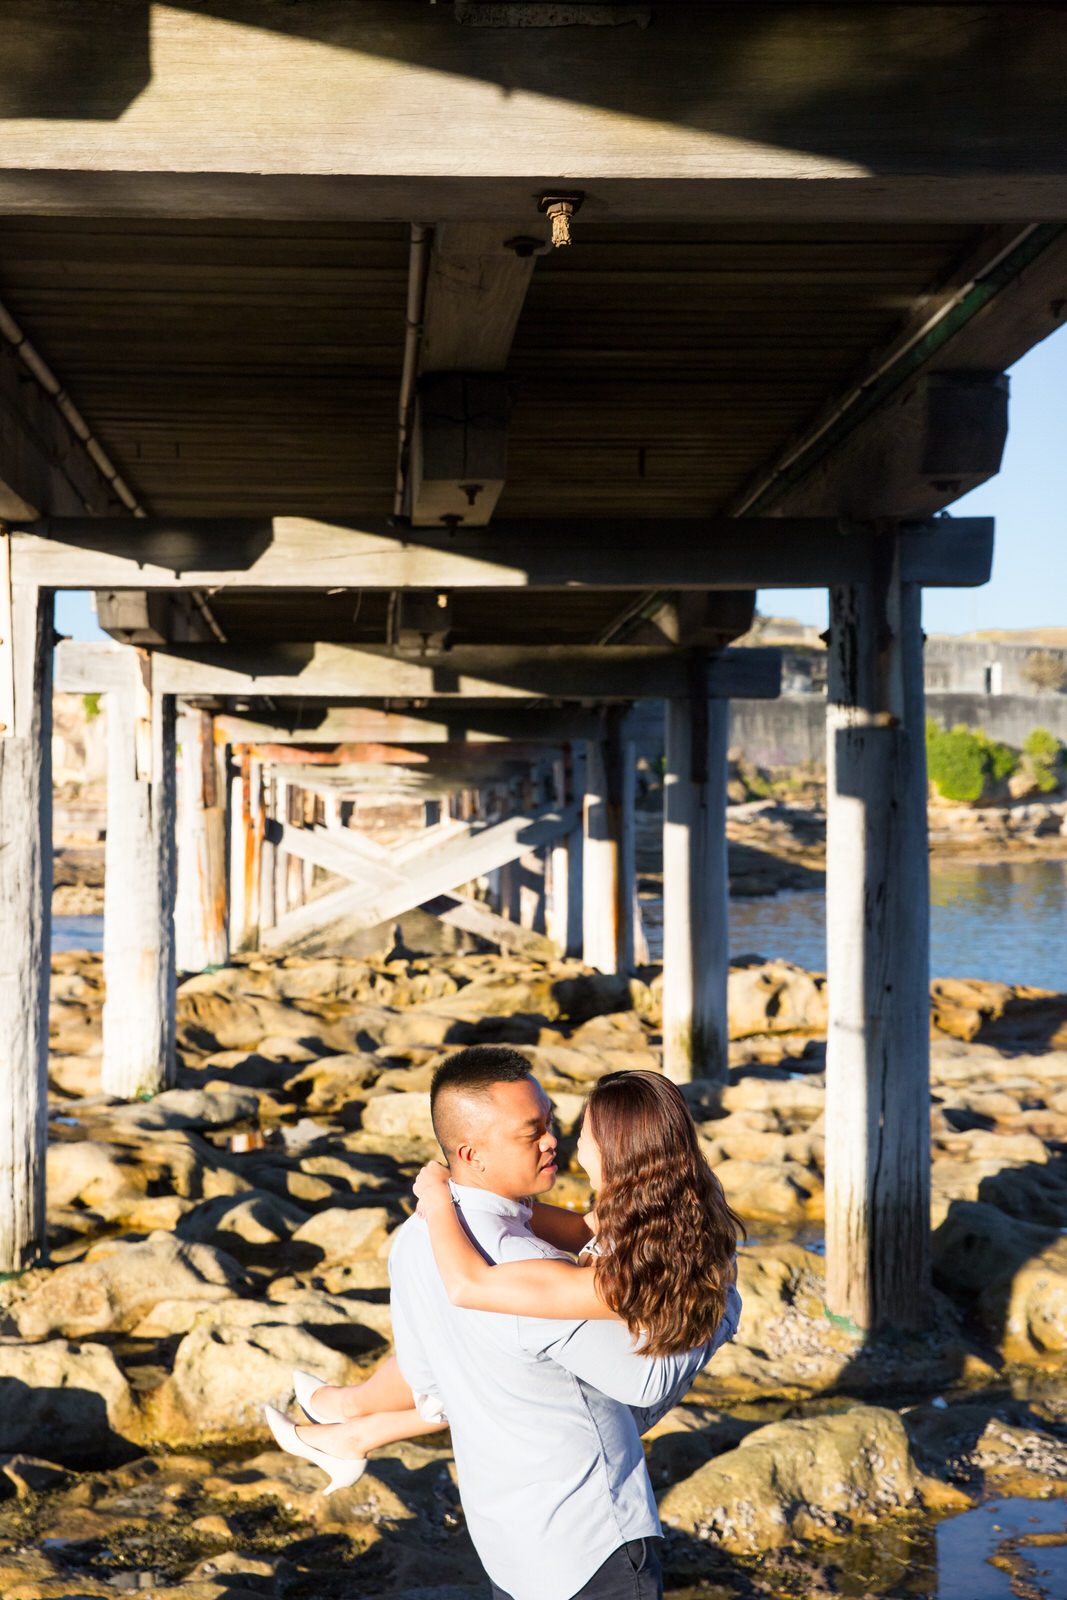 Sydney Engagement Pre-Wedding Photography Session - Jennifer Lam Photography - La Perouse (18).jpg